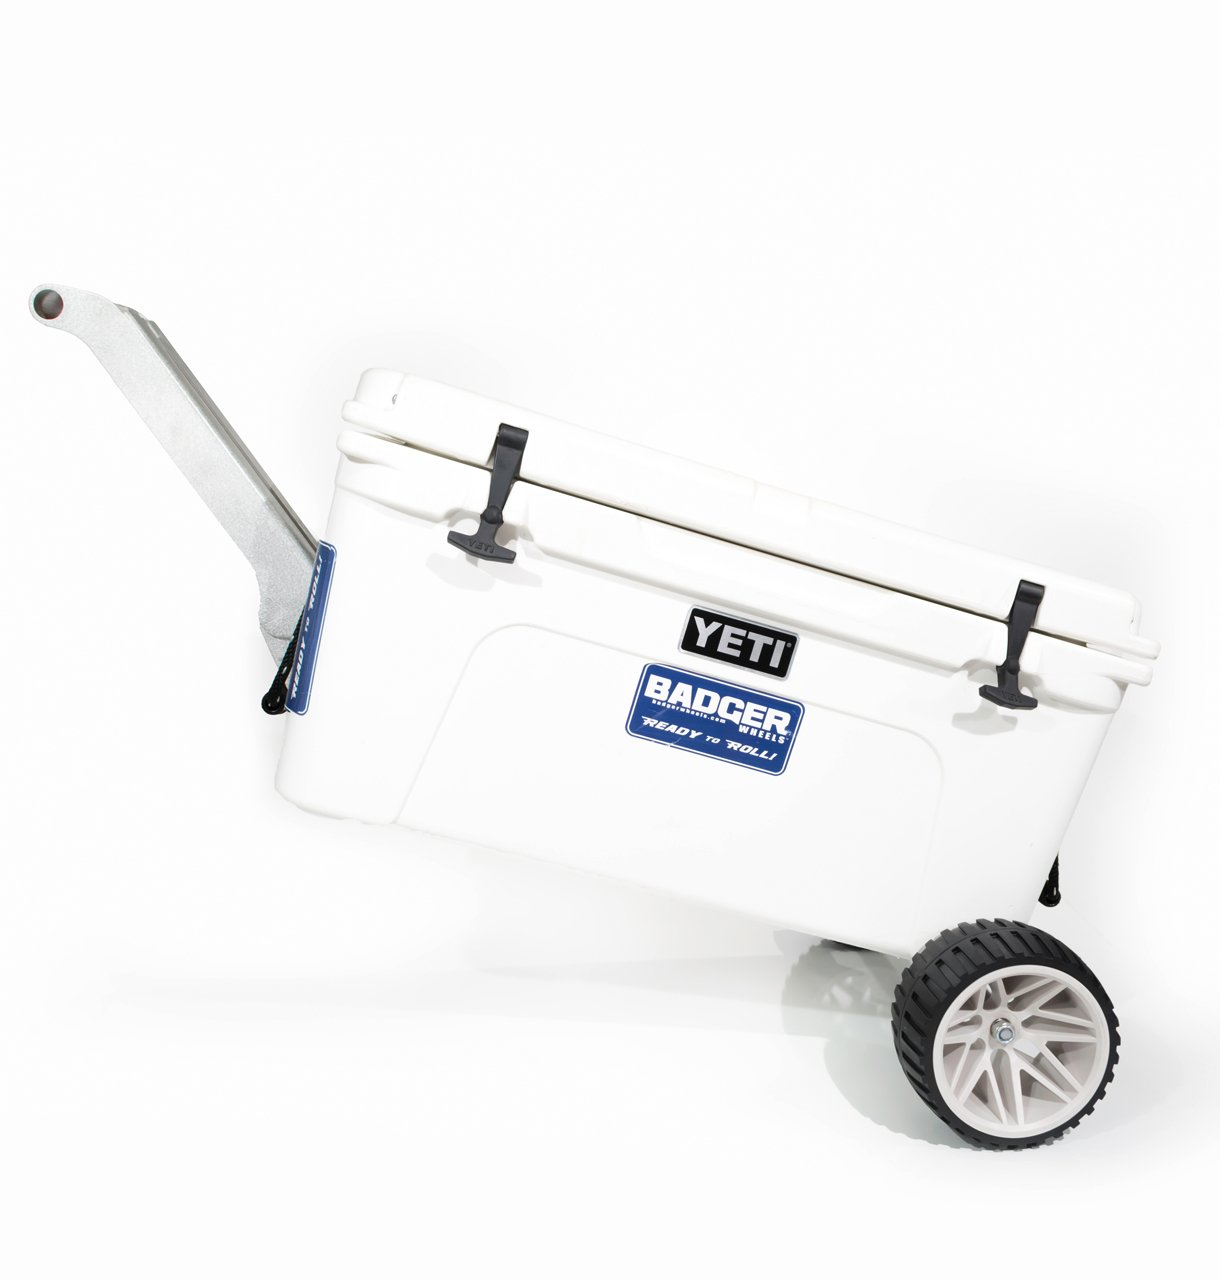 Badger Wheels - Large Single Axle with Rigid Handle/Stand for Yeti Tundra 35-160 by Badger Wheels